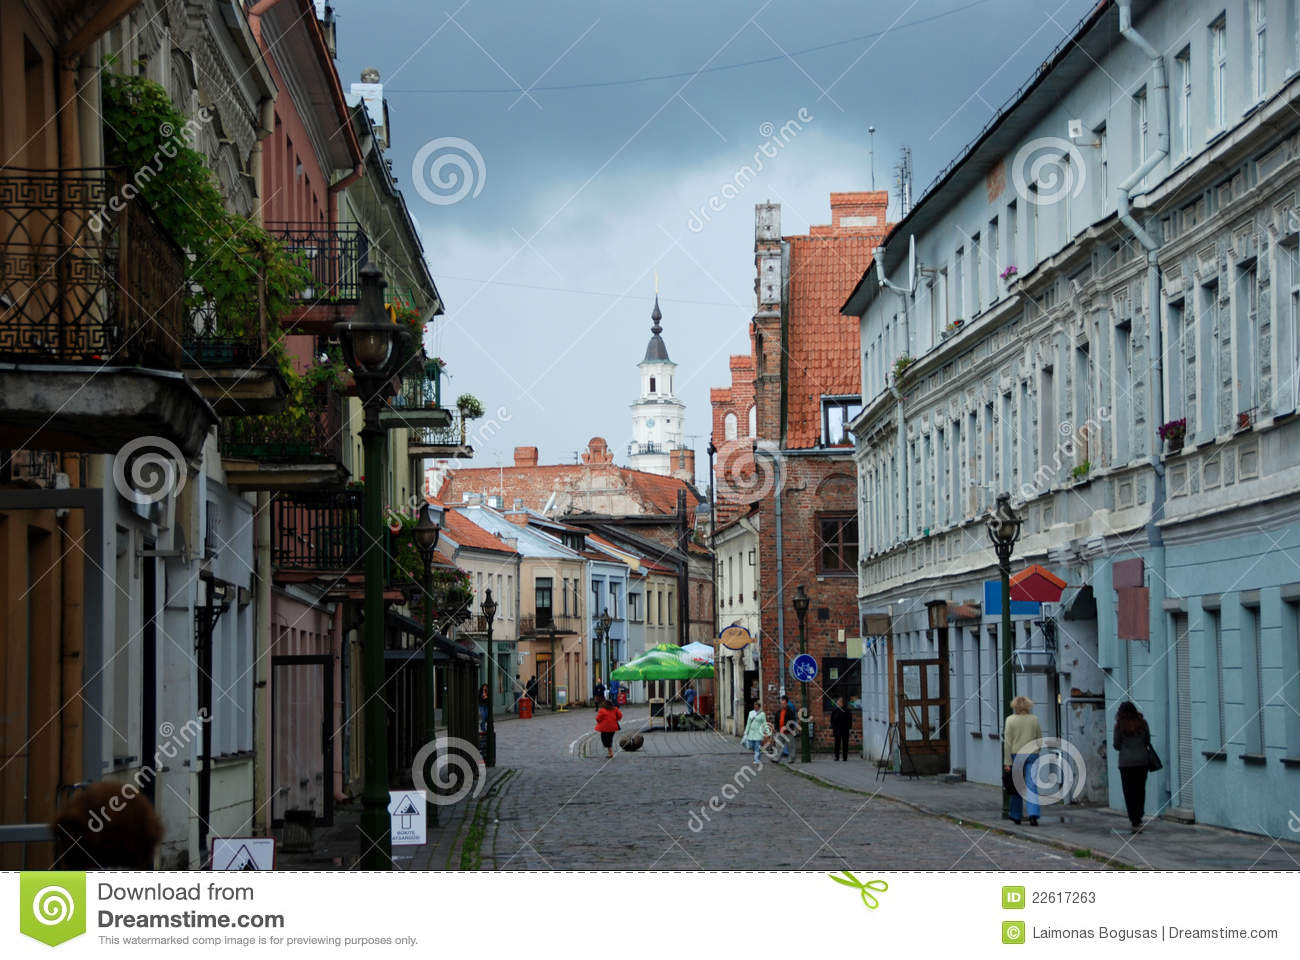 Street in old town of Kaunas, Lithuania